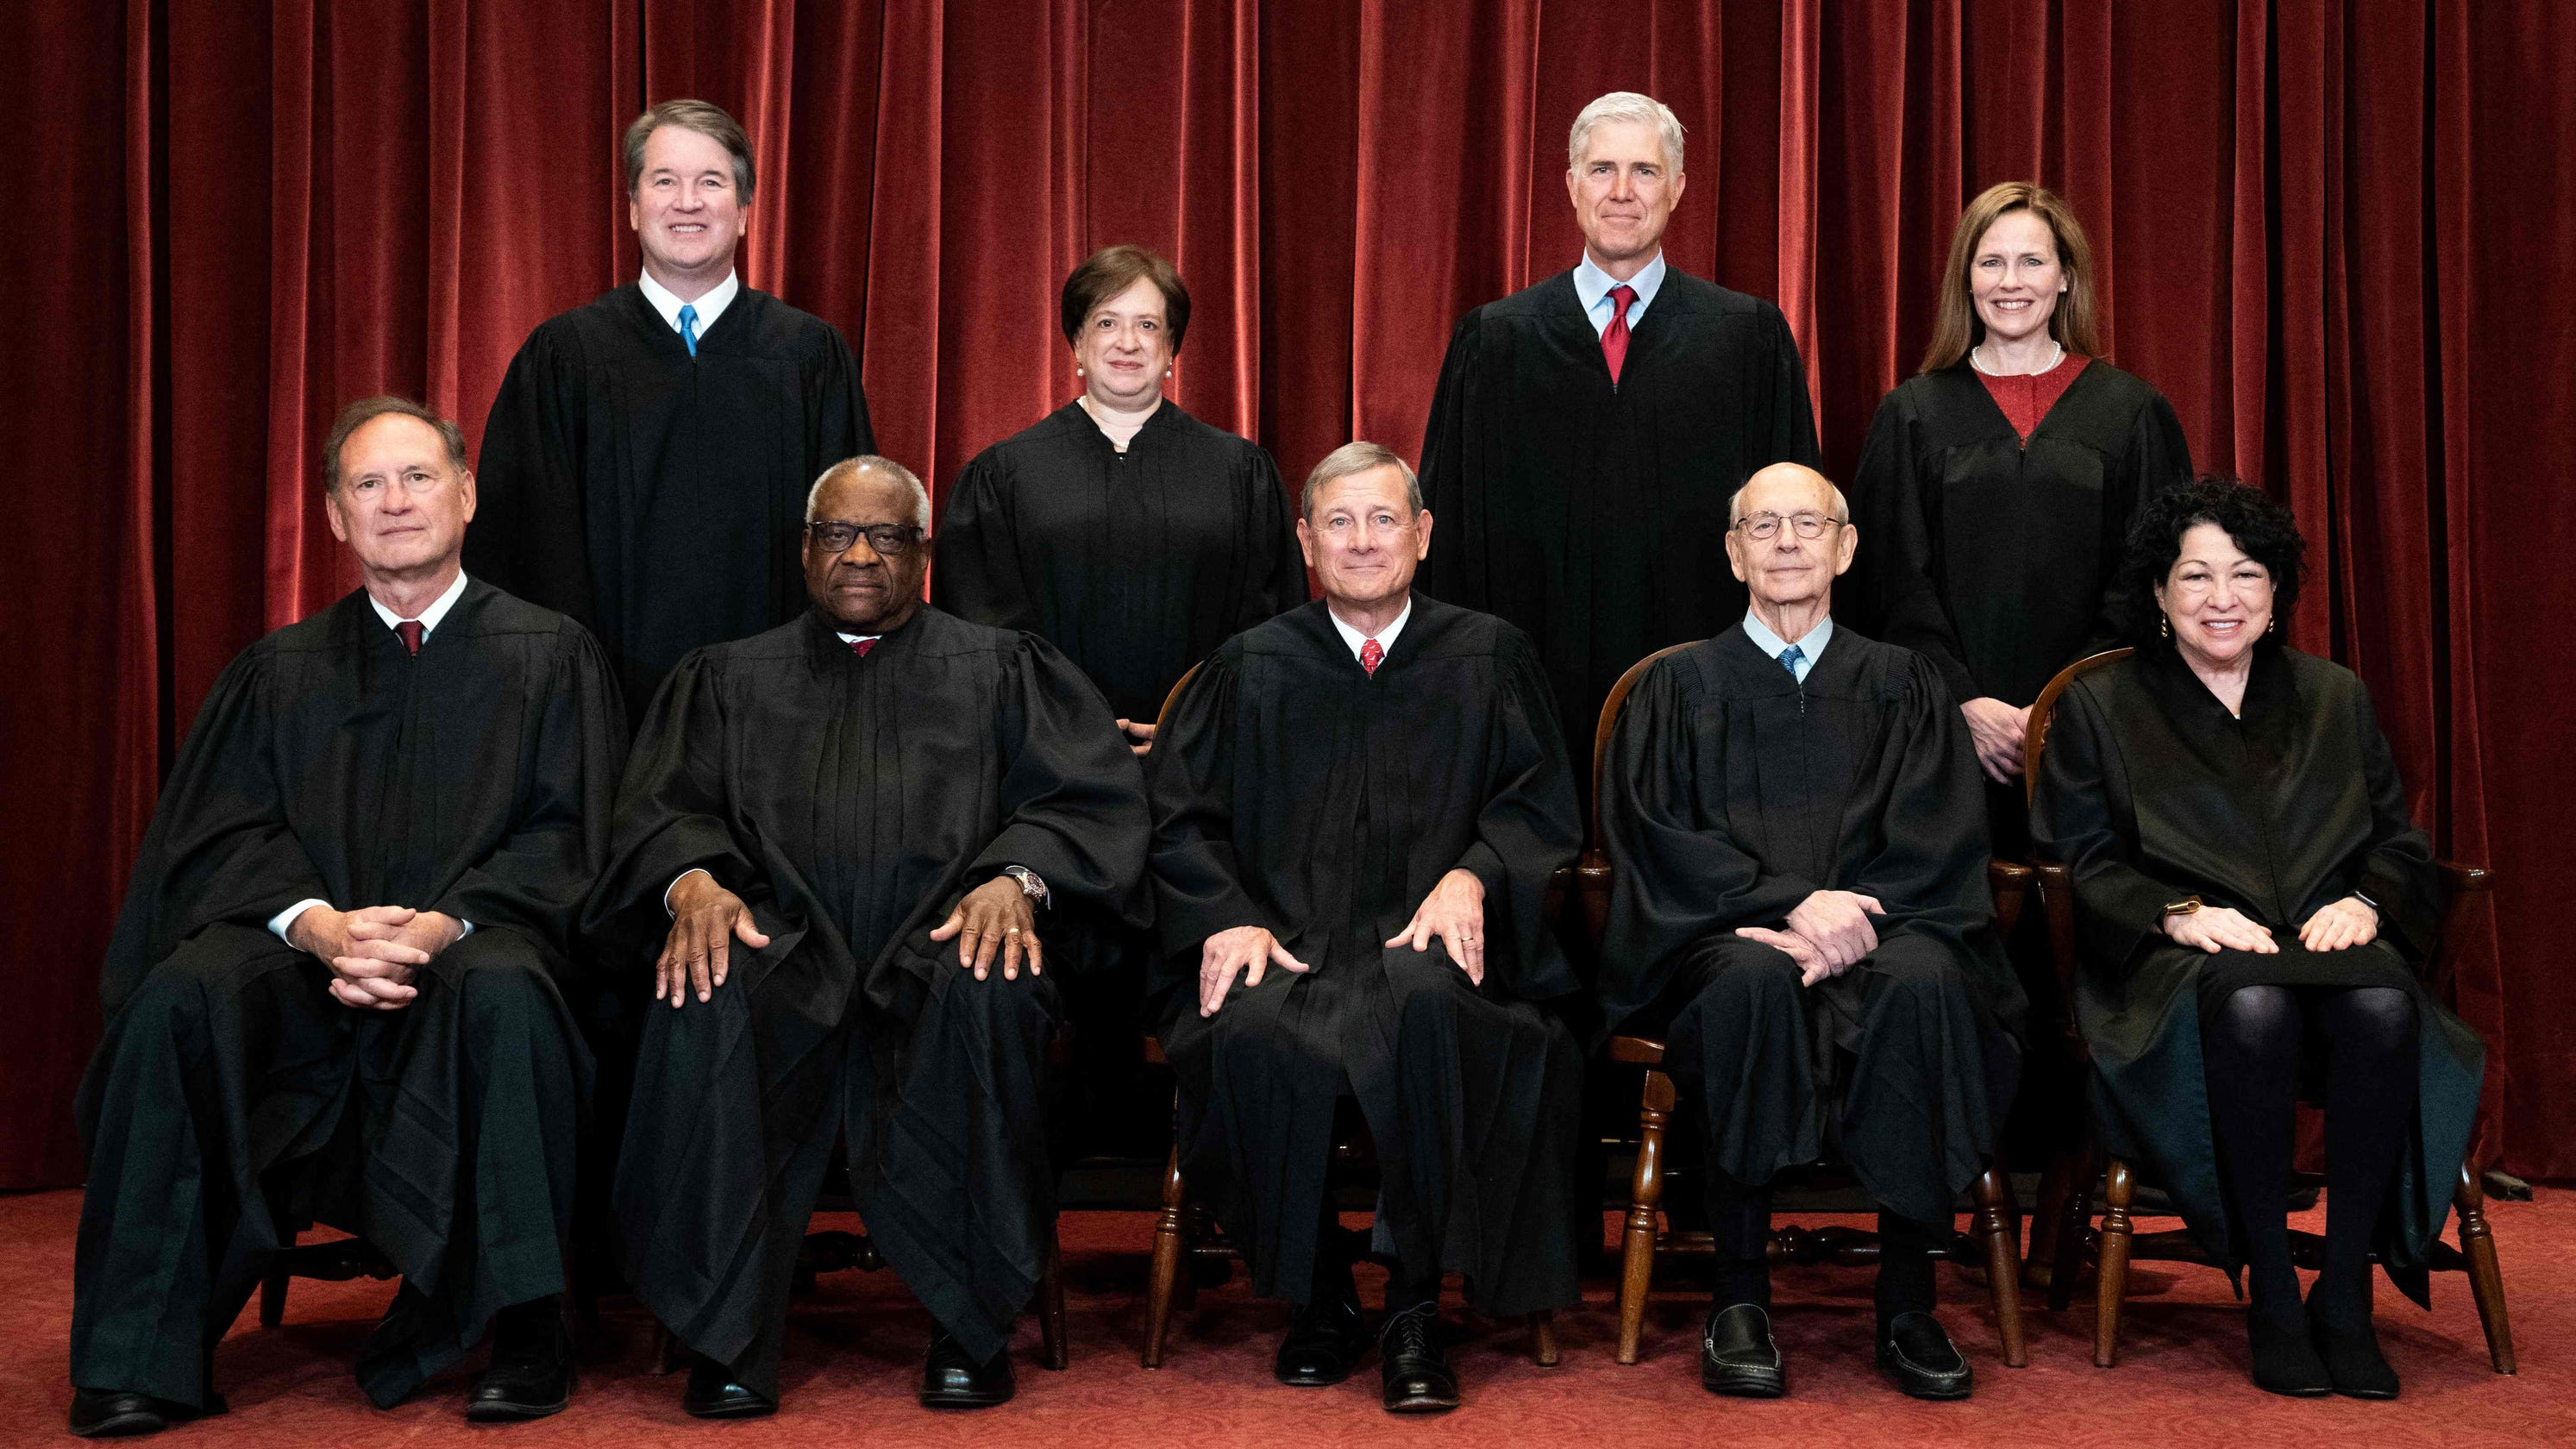 'Hopelessly divided' Supreme Court defies narrative with another unanimous opinion